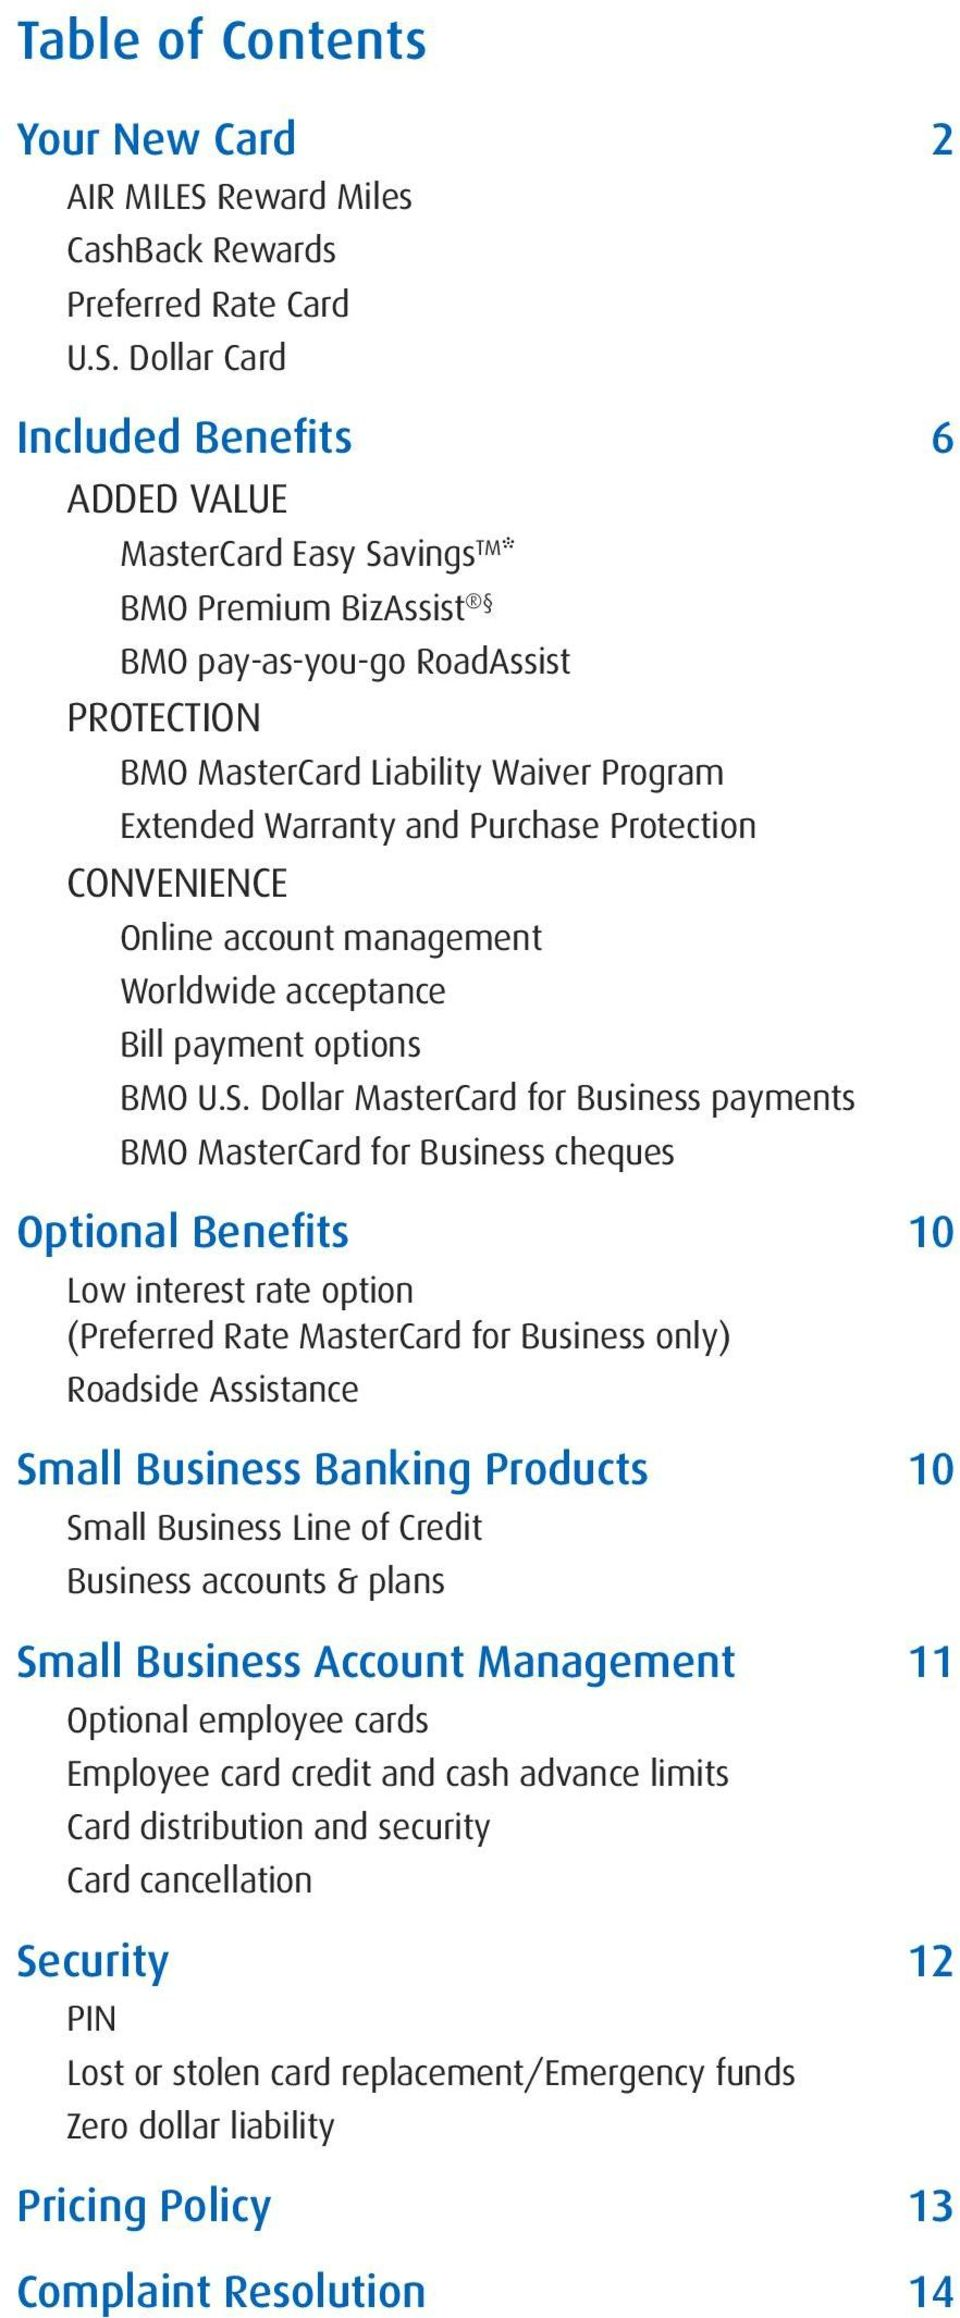 Dollar Card Included Benefits 6 ADDED VALUE MasterCard Easy Savings TM * BMO Premium BizAssist BMO pay-as-you-go RoadAssist PROTECTION BMO MasterCard Liability Waiver Program Extended Warranty and